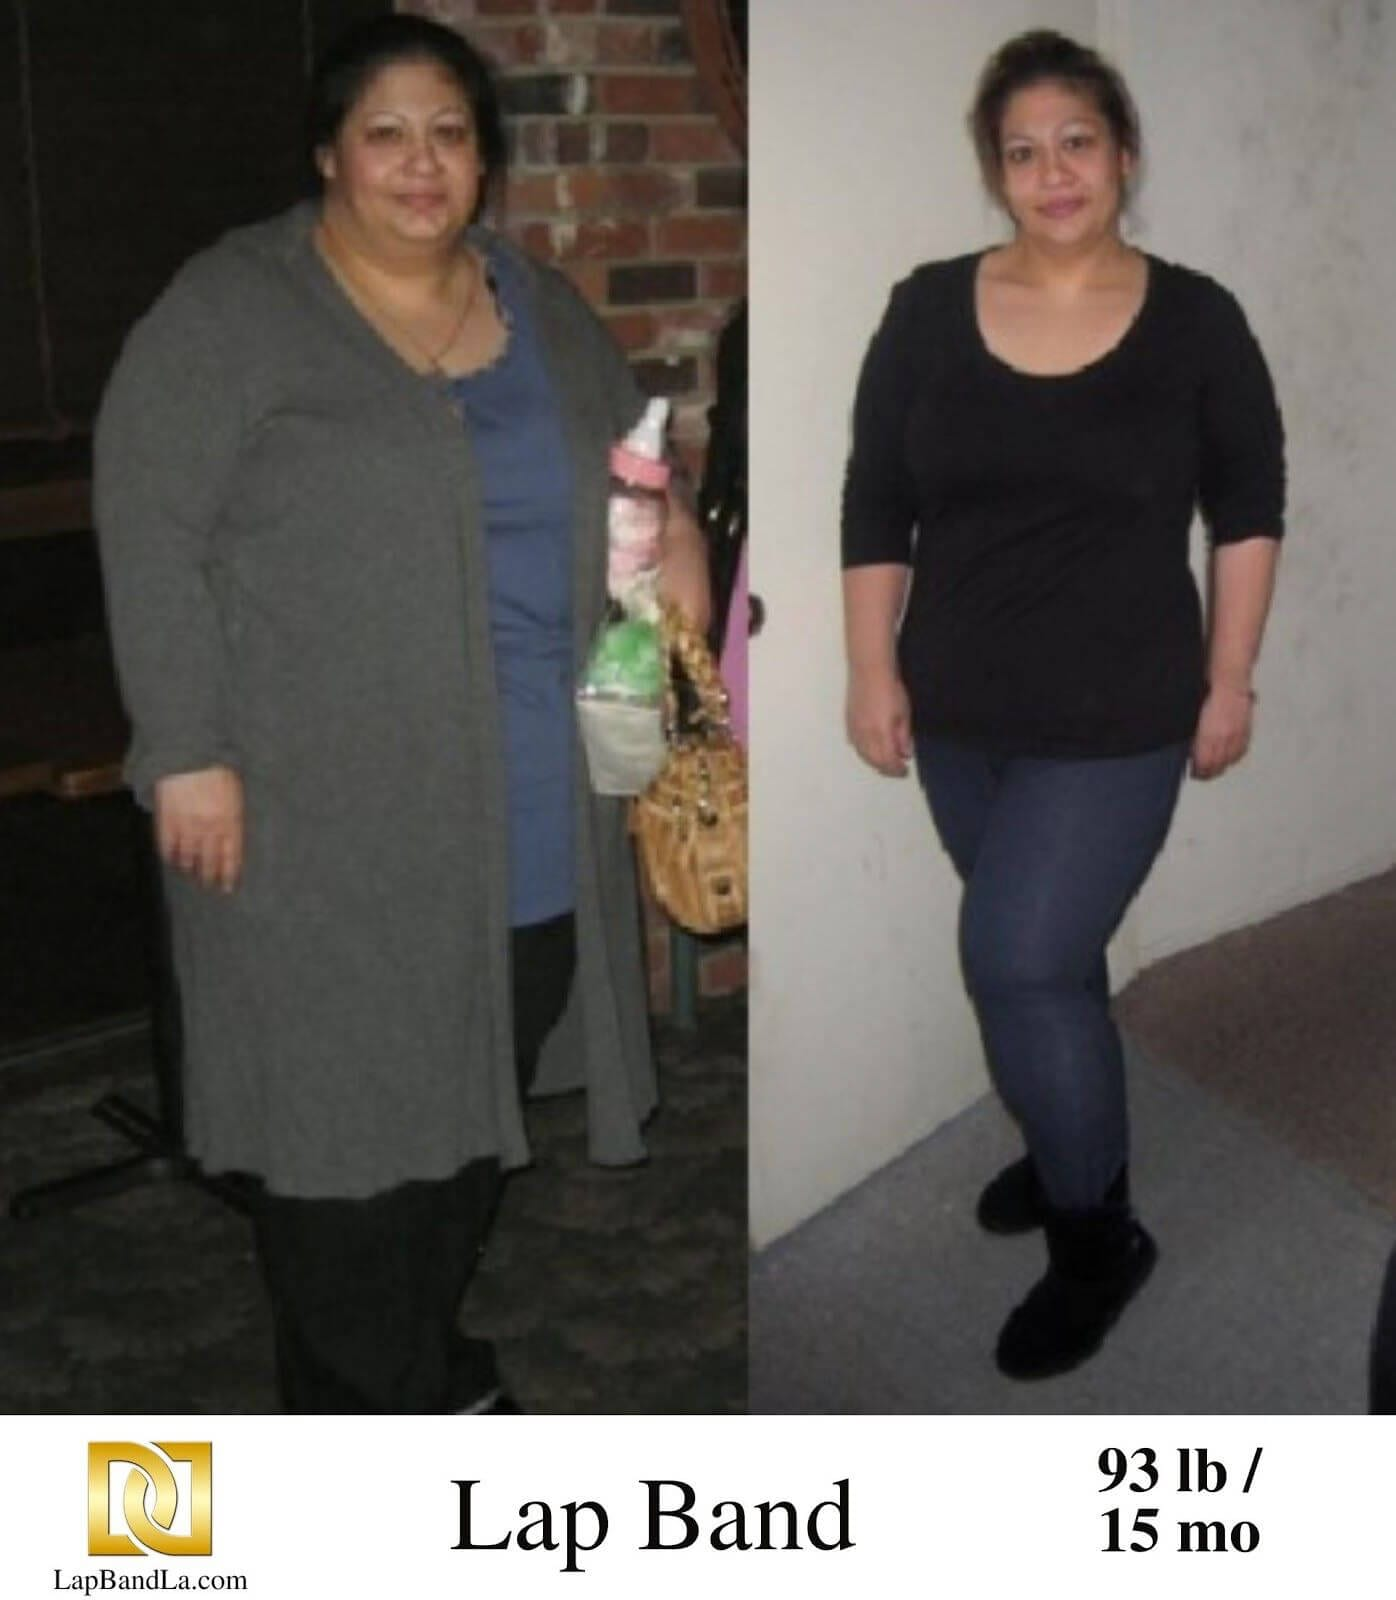 &Amp;Lt;H1 Class=&Amp;Quot;Hide_09&Amp;Quot;&Amp;Gt;Bariatric Surgery &Amp;Lt;Br&Amp;Gt;Before And After - Anita S.&Amp;Lt;/H1&Amp;Gt; | Success_Storie | The Weight Loss Surgery Center Of Los Angeles | Dr. David Davtyan